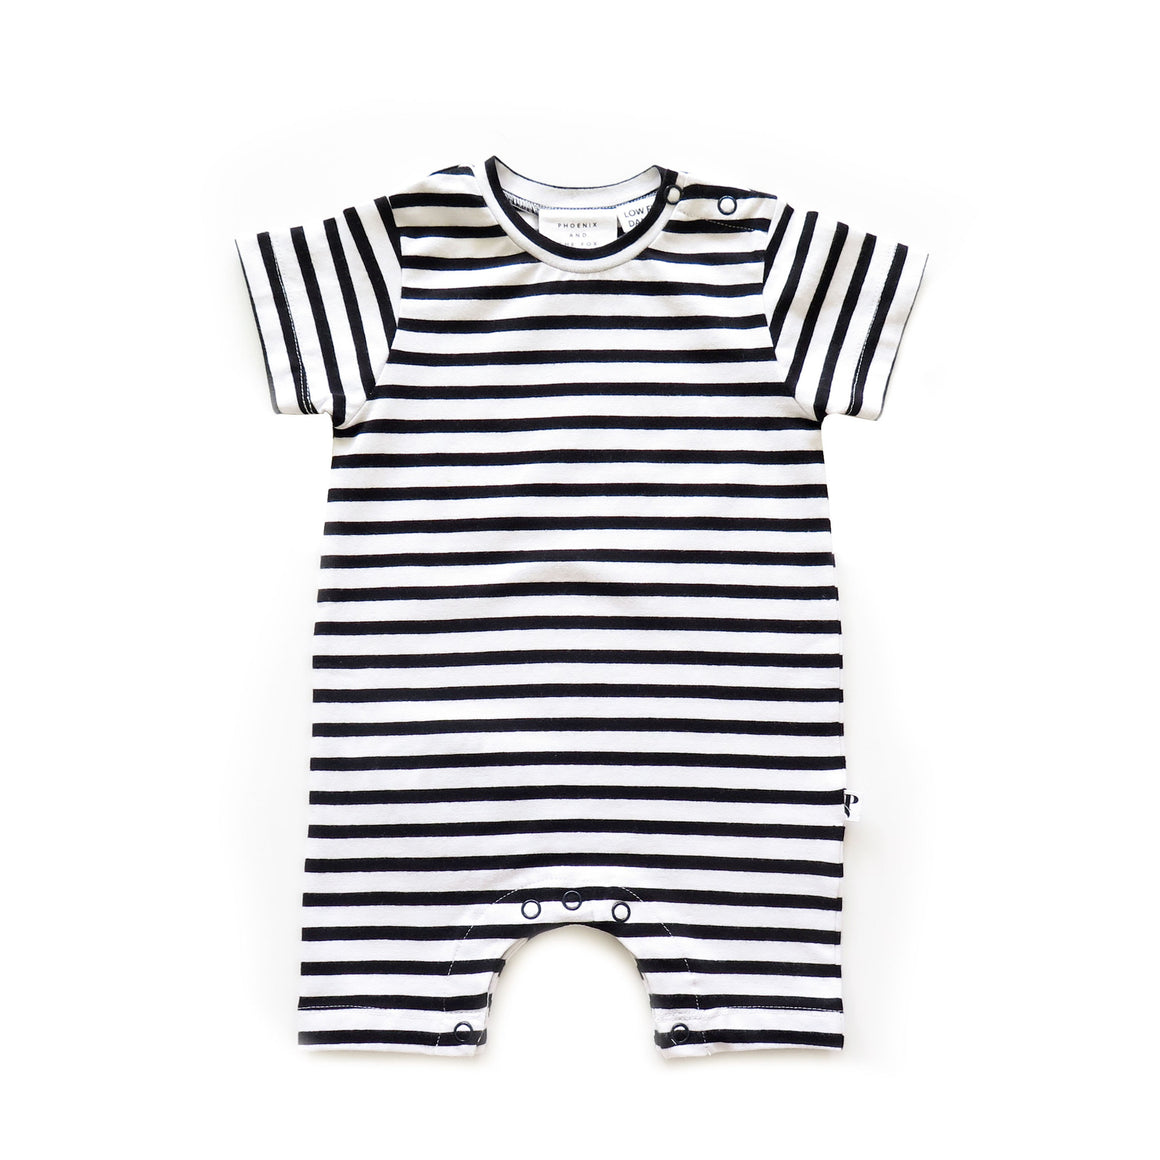 CLEVELAND ROMPER - CHINA TOWN STRIPE